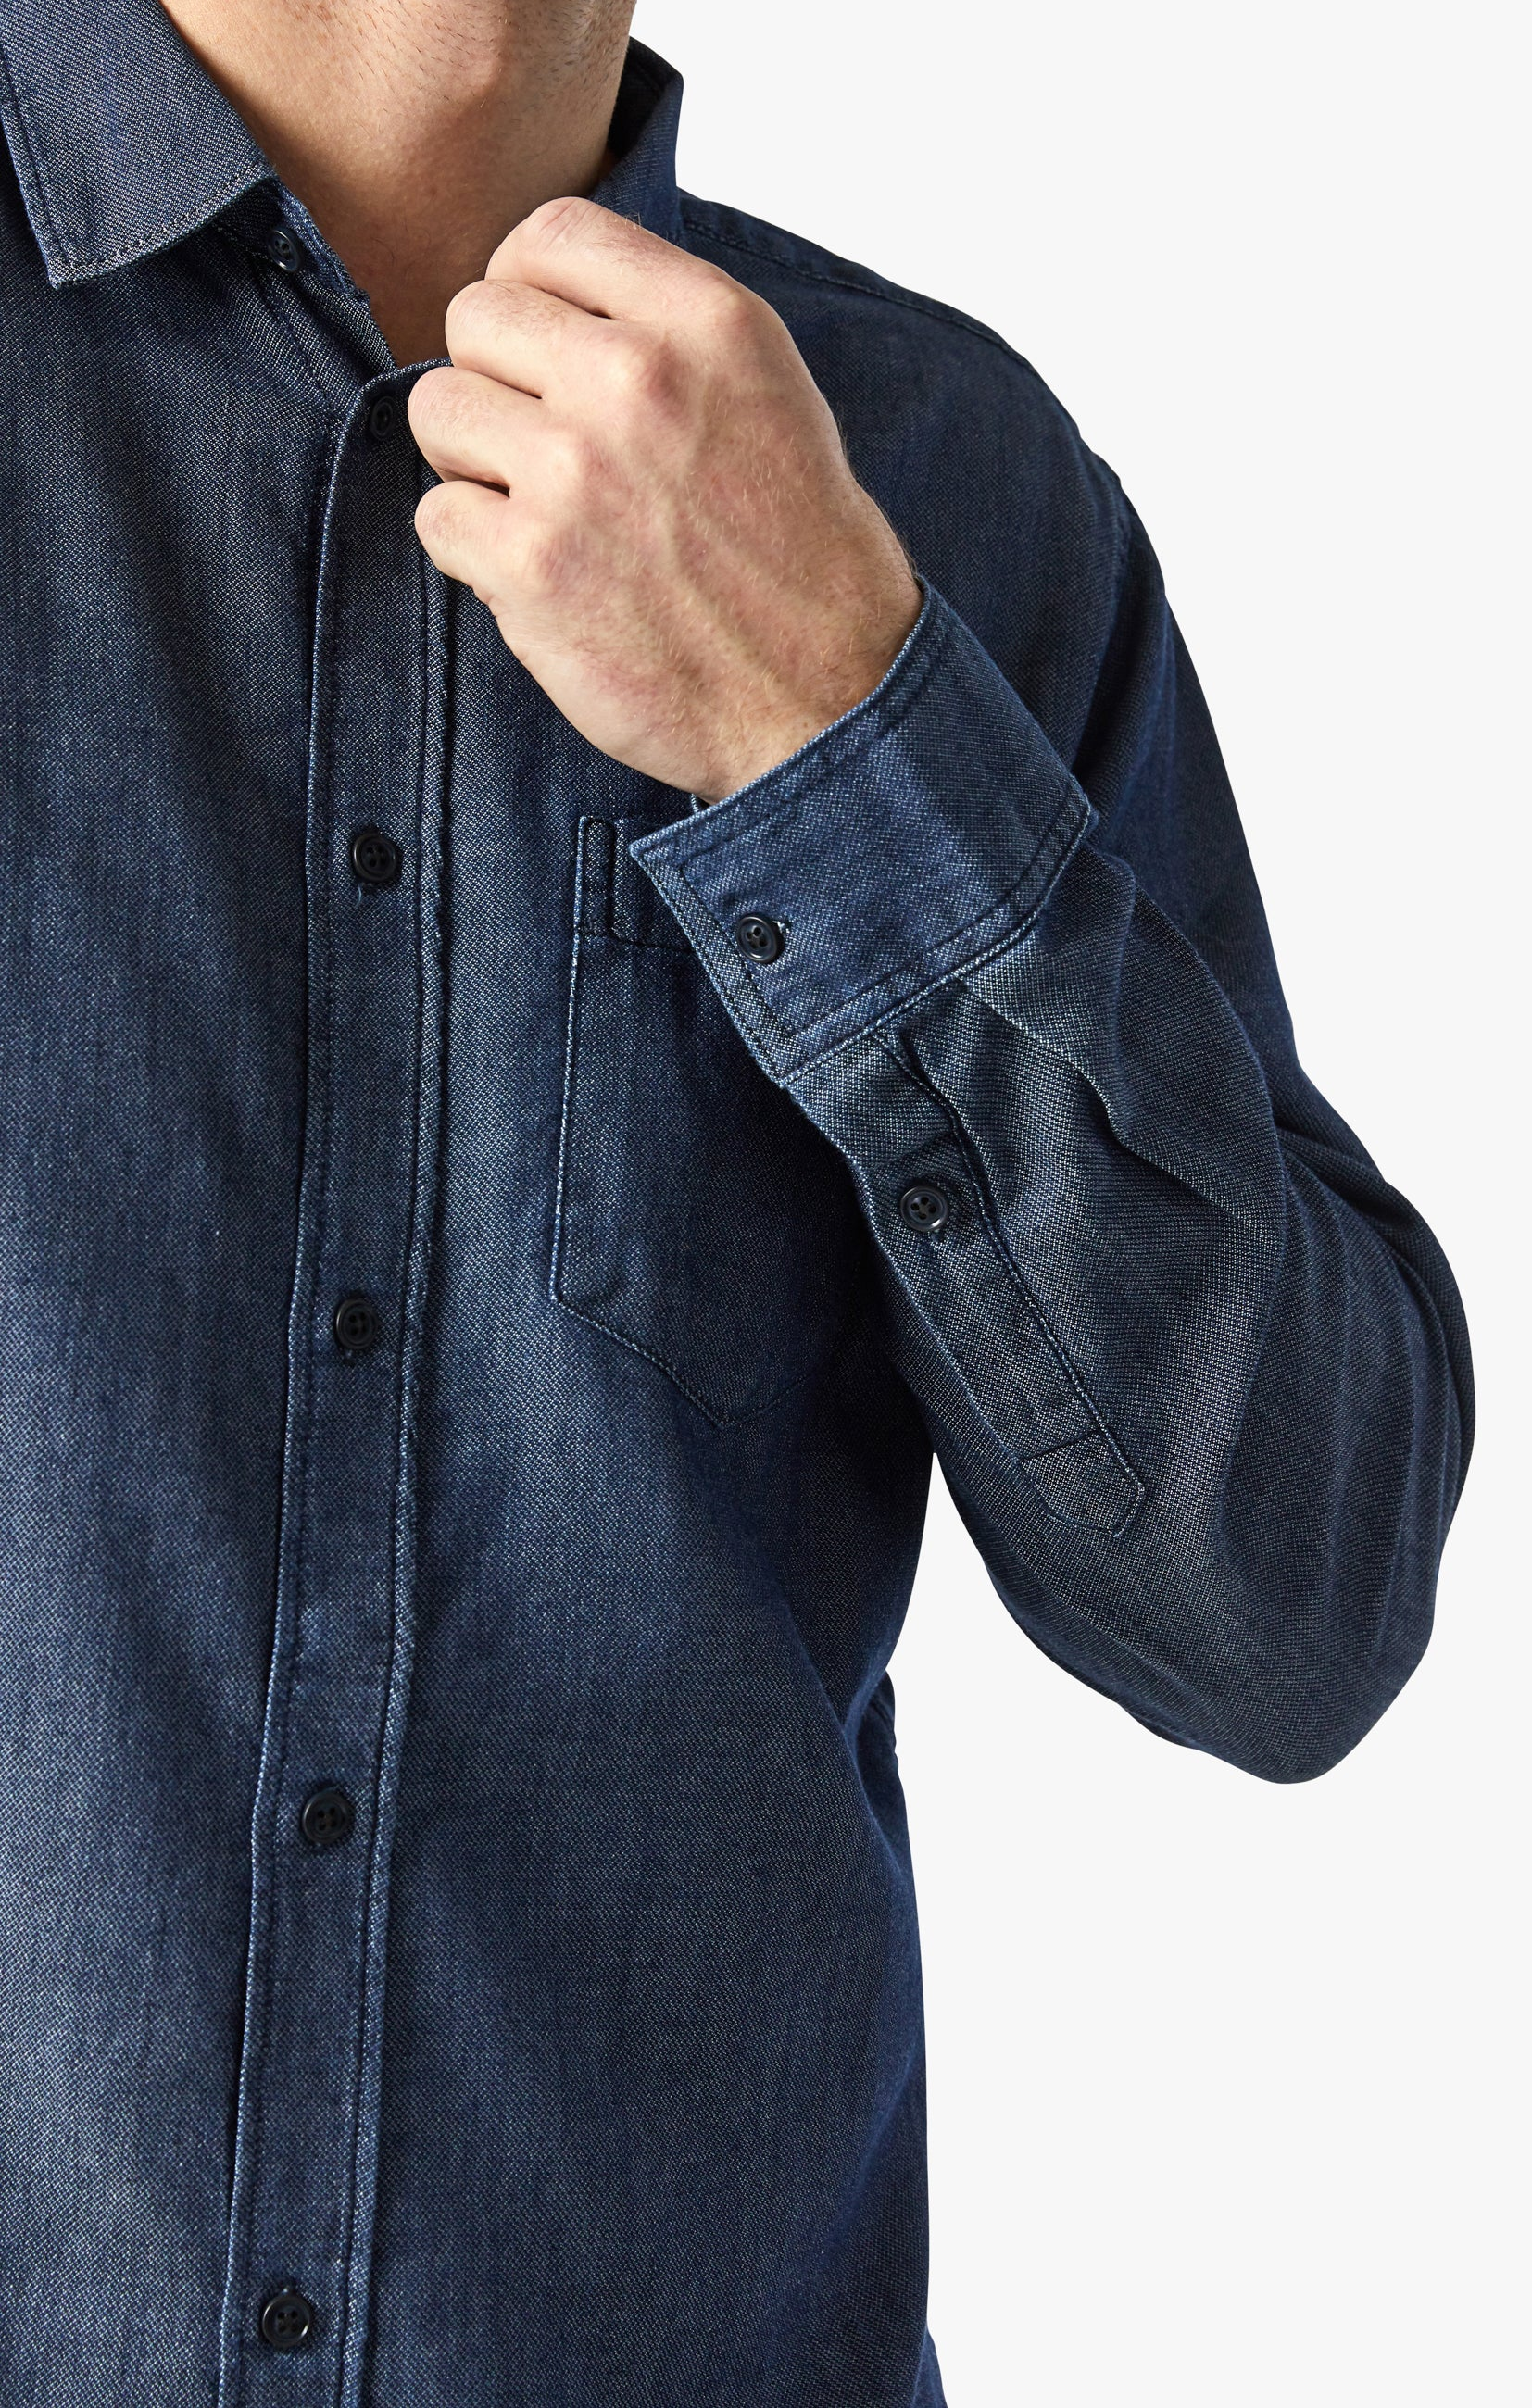 Chris Denim Shirt In Rinse Image 1